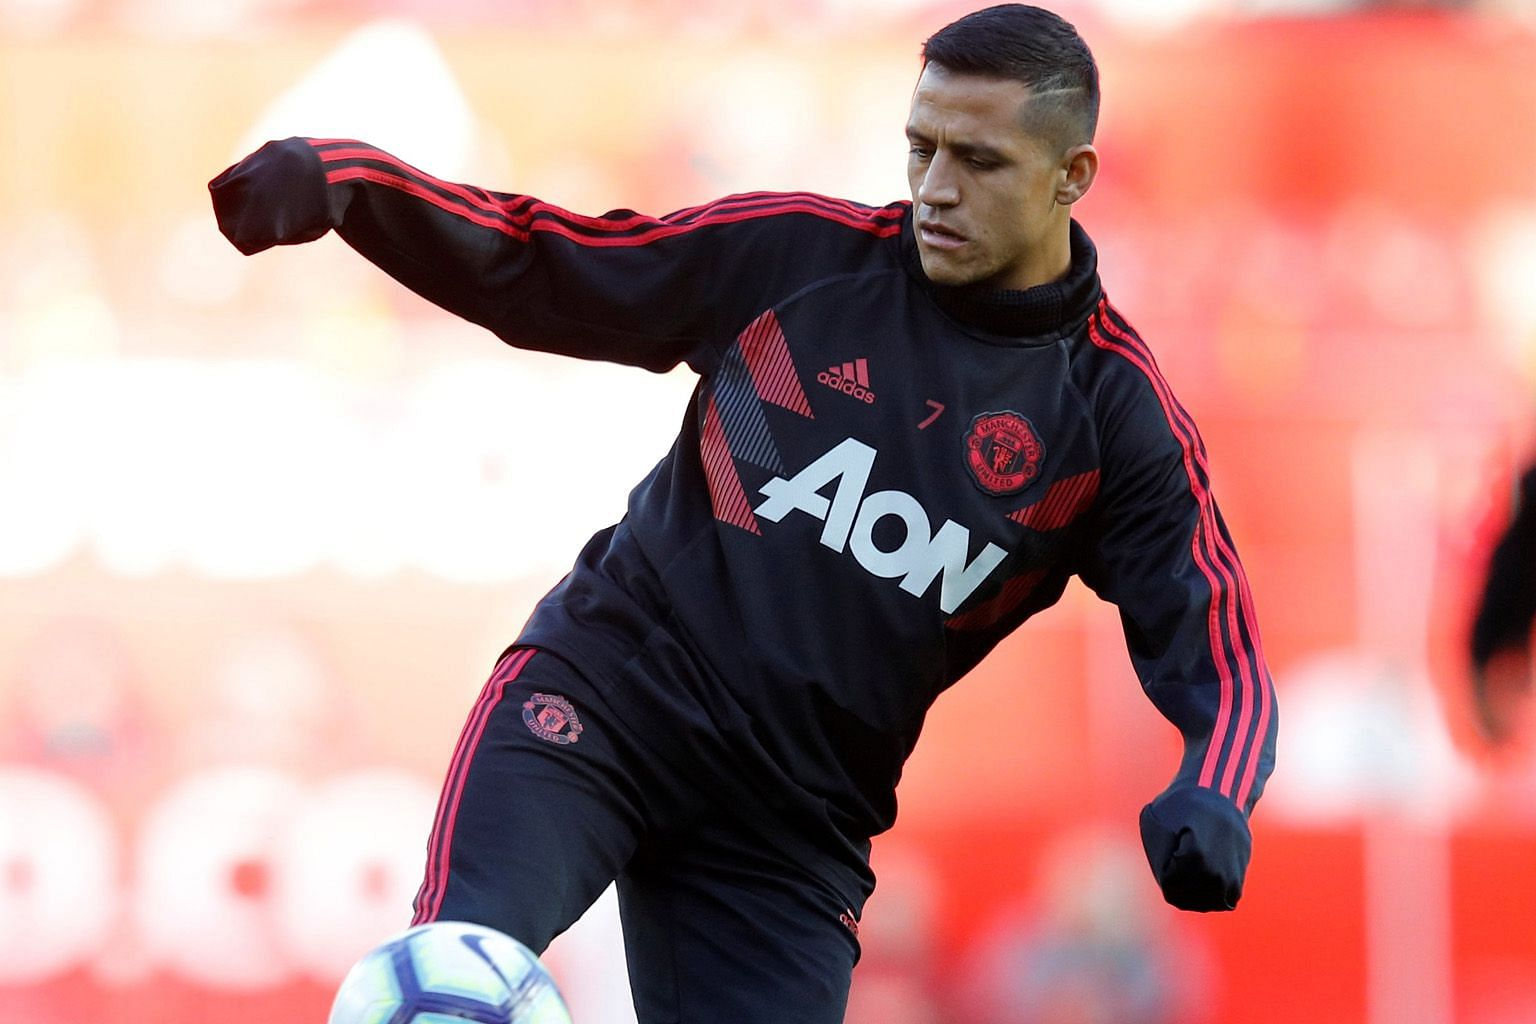 Alexis Sanchez warming up before the league match against Newcastle in October. He was out injured for the whole of last month.